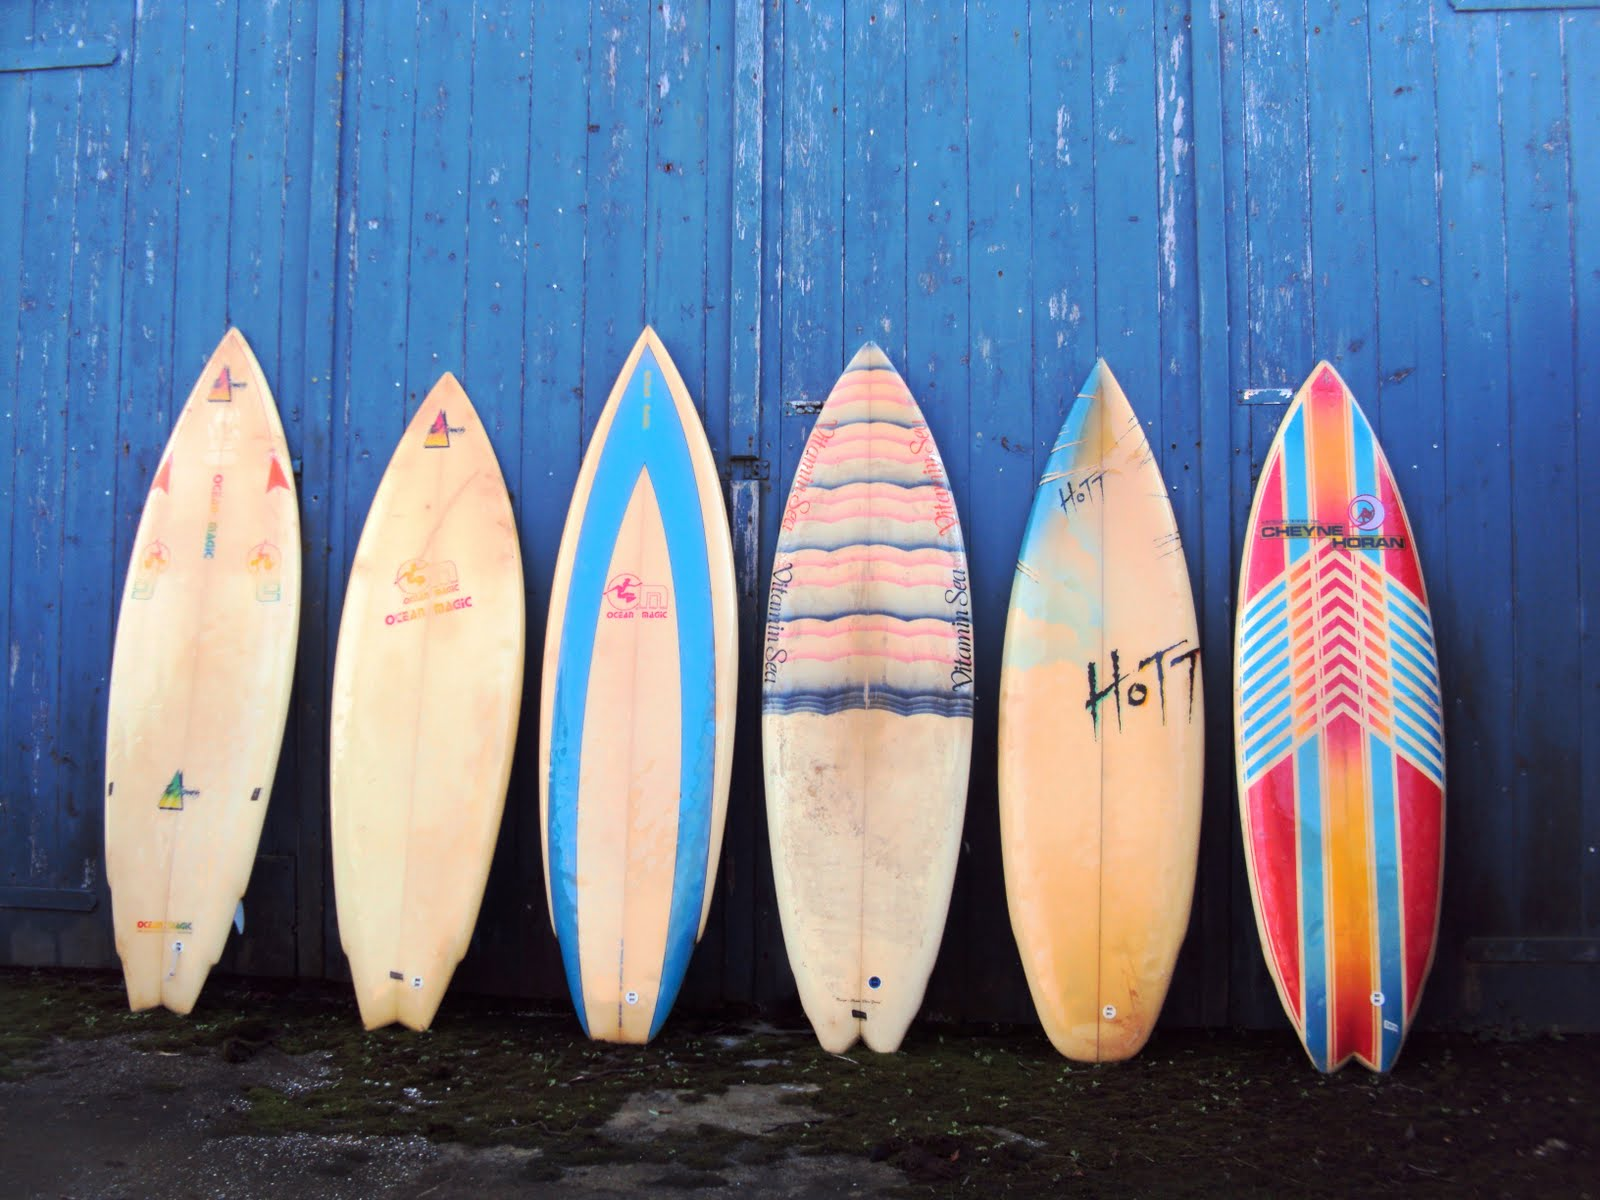 Stussy Hd Wallpaper Vintage Surfboard Collector Uk Early 80s